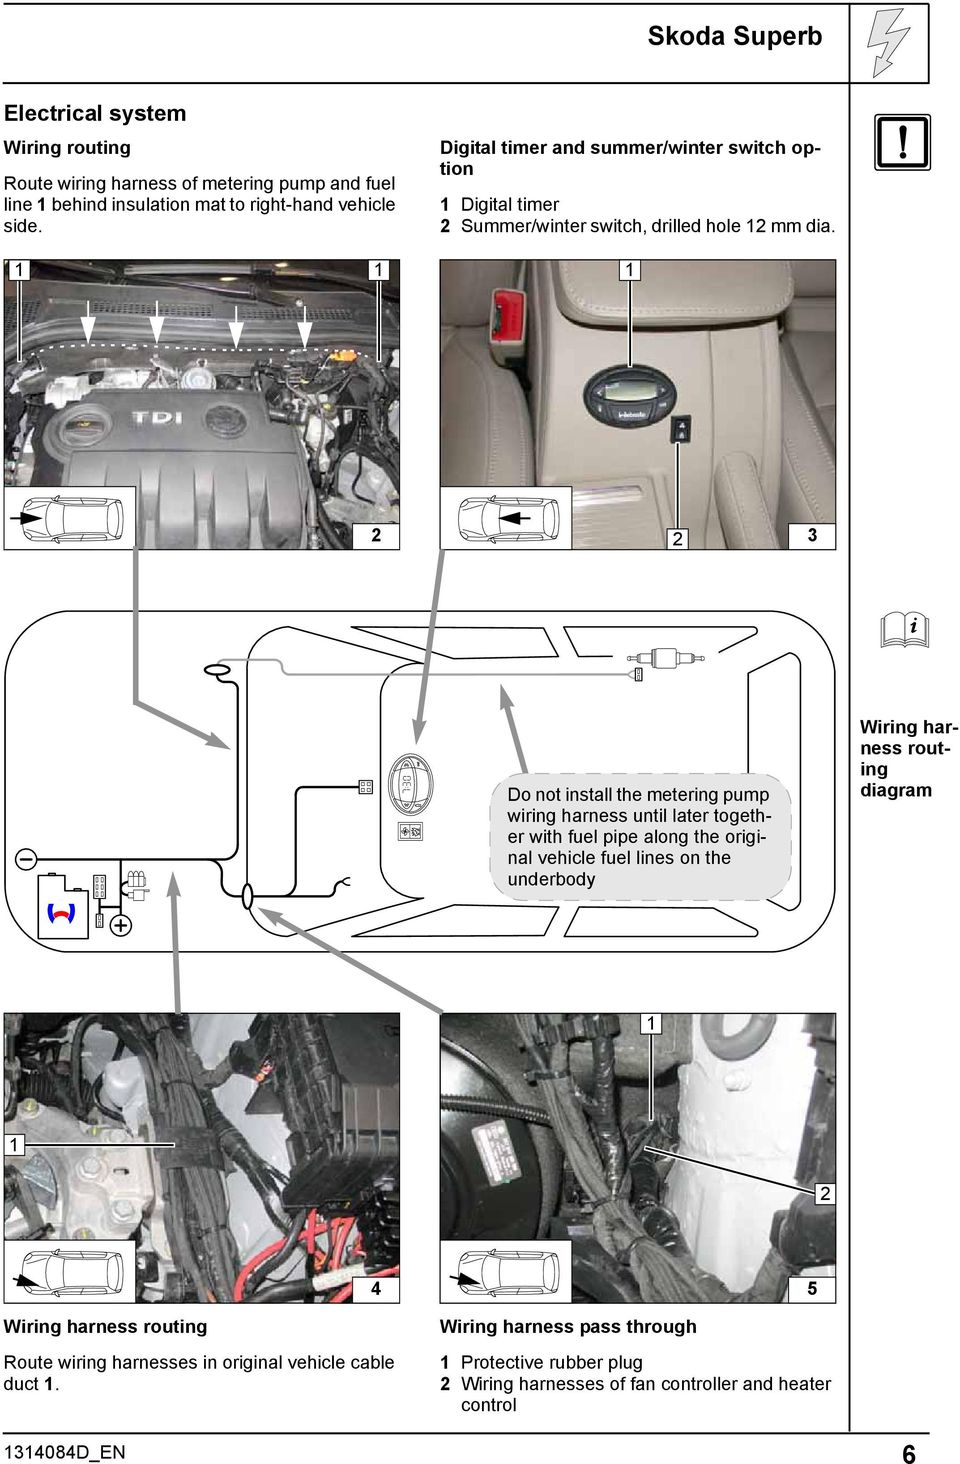 Always Follow All Webasto Installation And Repair Instructions Mercedes Benz Engine Wiring Harness Routing Diagrams Do Not Install The Metering Pump Until Later Together With Fuel Pipe Along